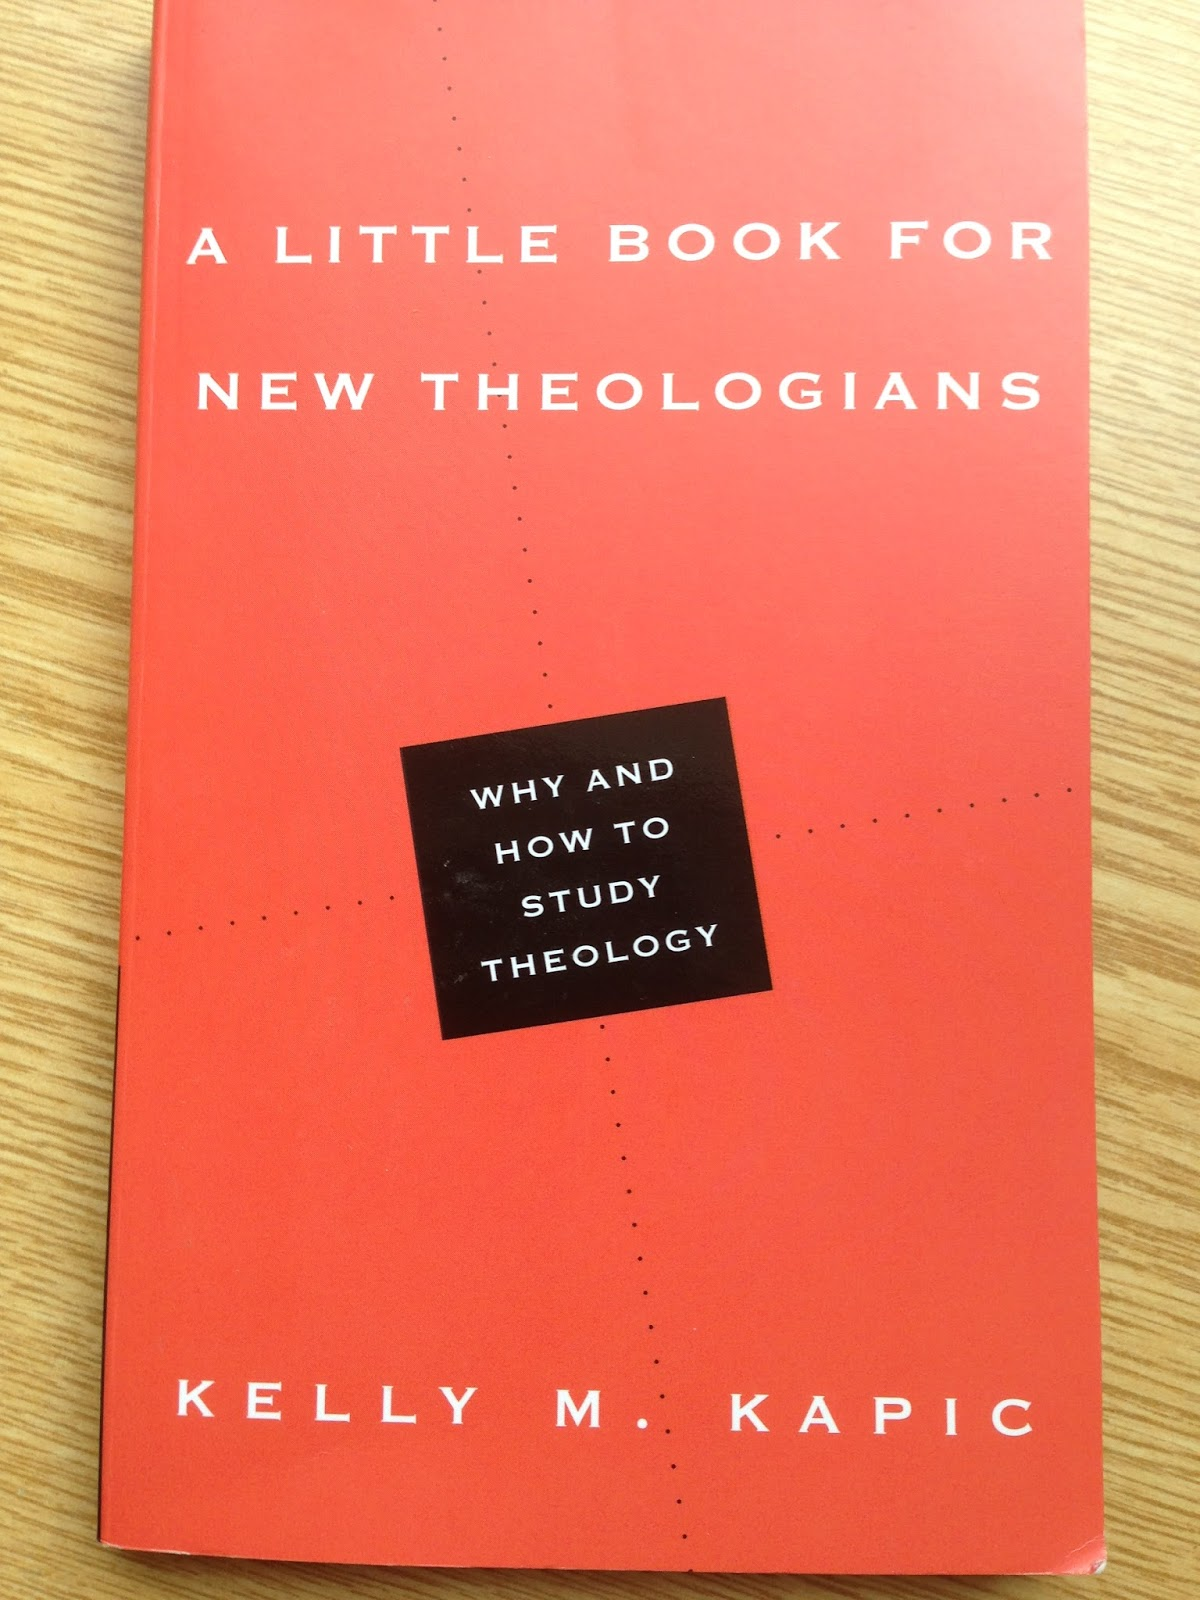 a review of a little exercise for young theologians by helmut thielicke Available at wwwknittingtogethercouk for review  a little book for new theologians why and how to  little exercise for young theologians helmut thielicke.